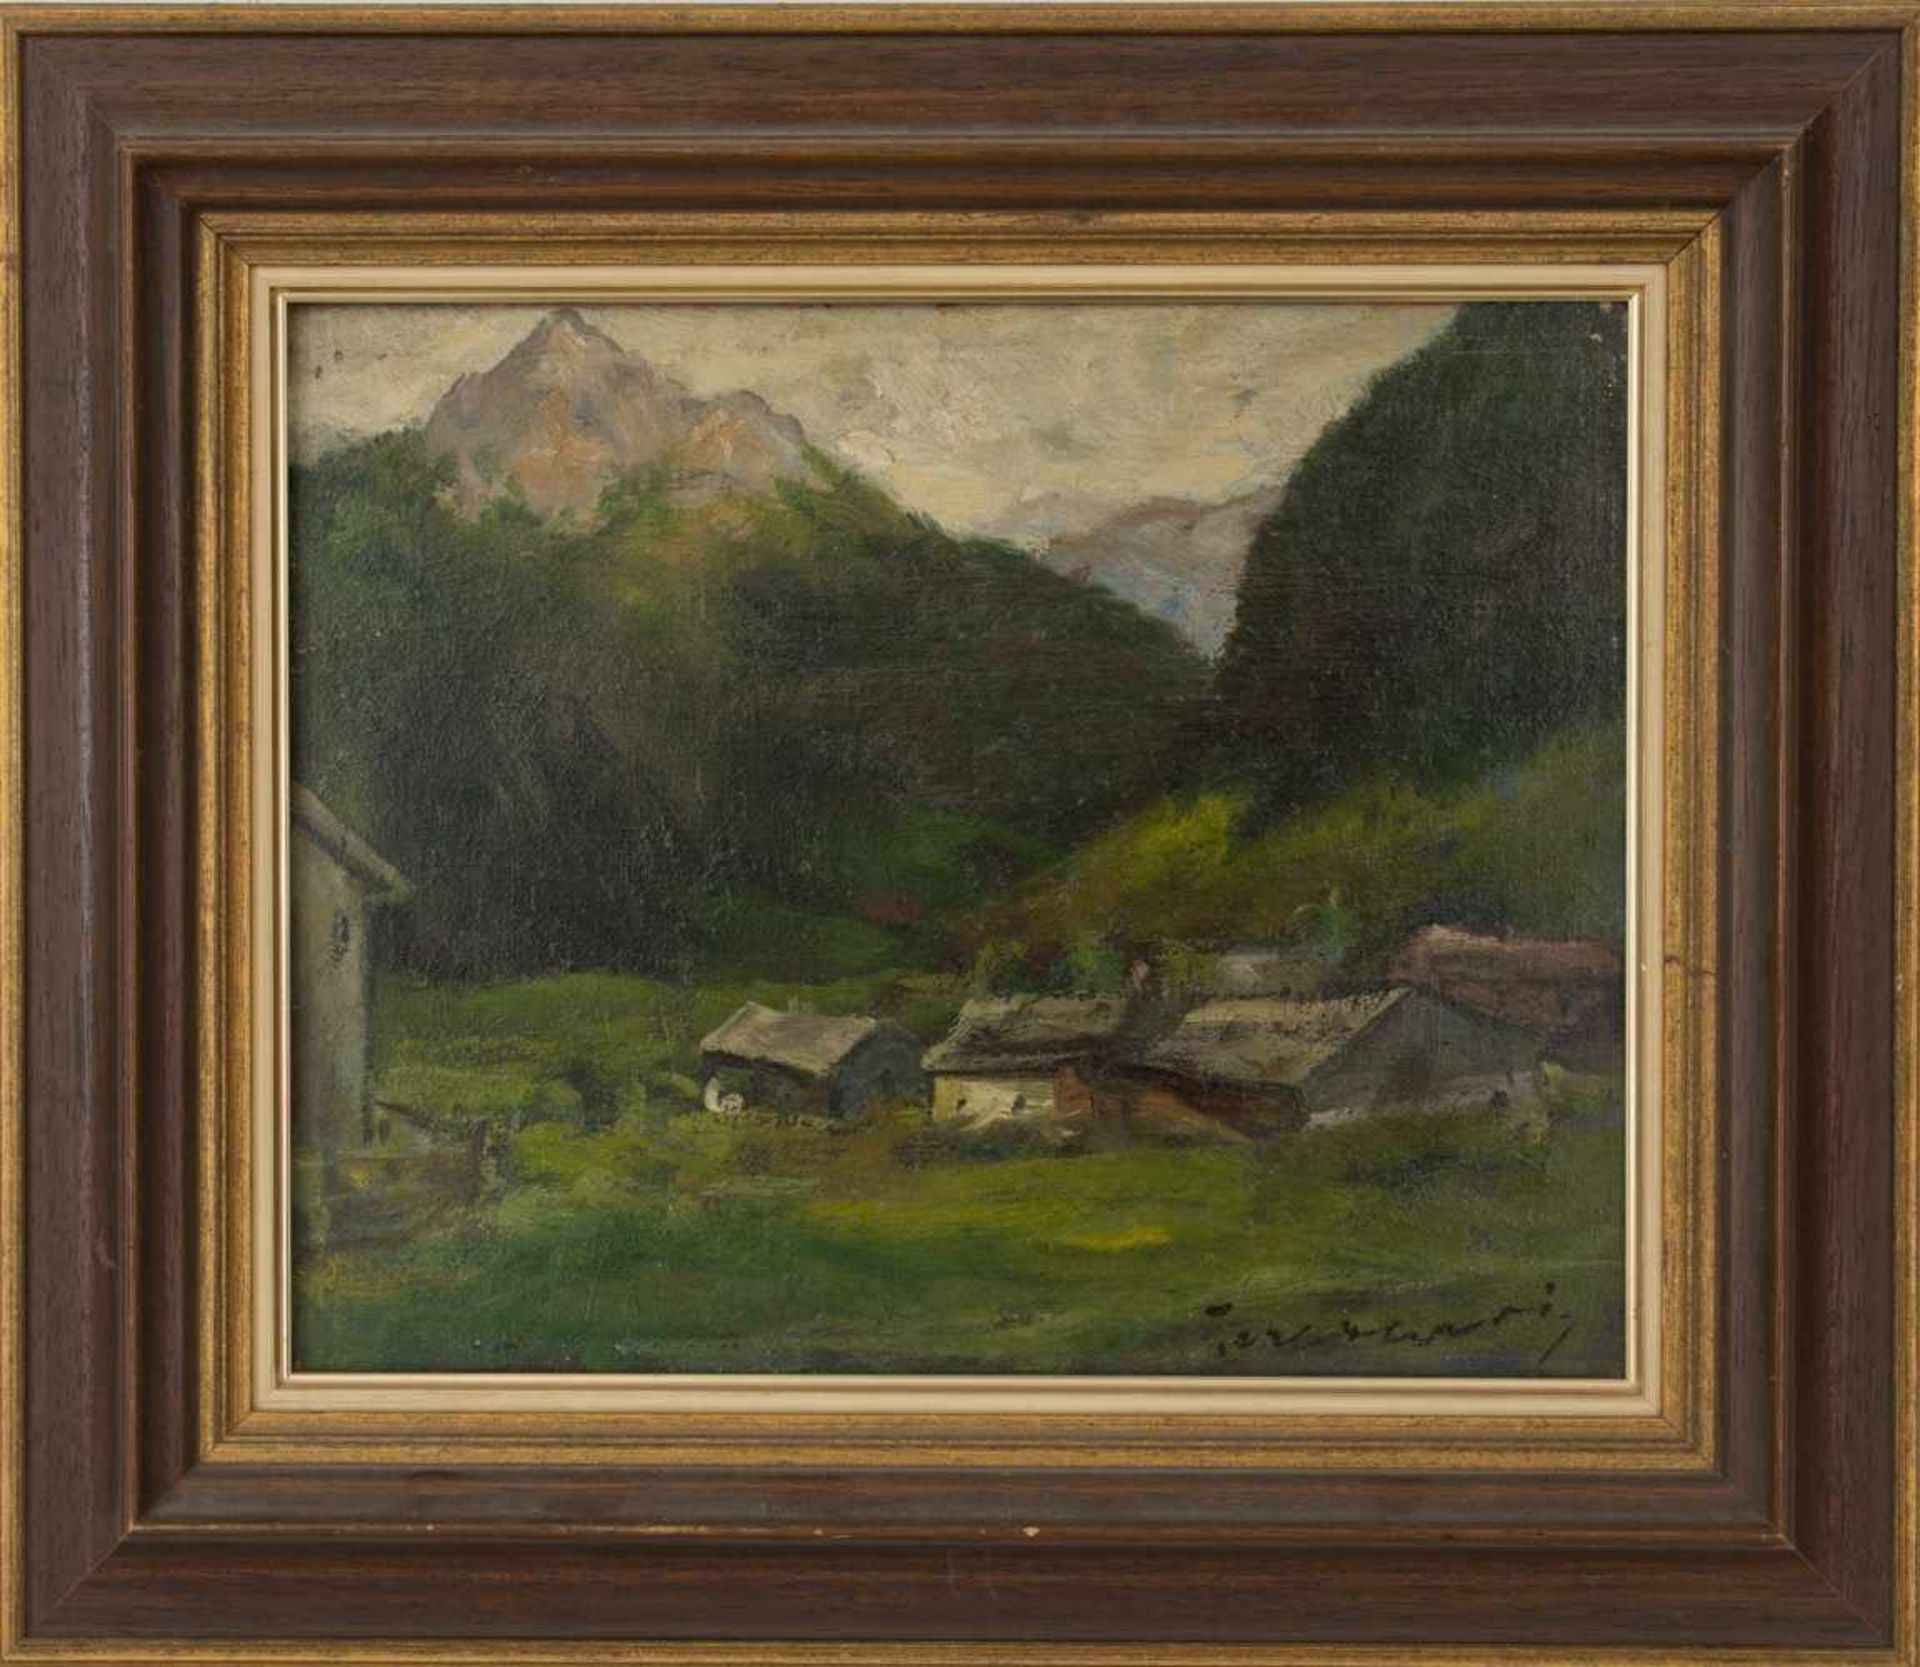 Los 28 - Alpine view, Artist of the 20th century, oil on canvas, signed. signed (lower right) Teronari(?) and